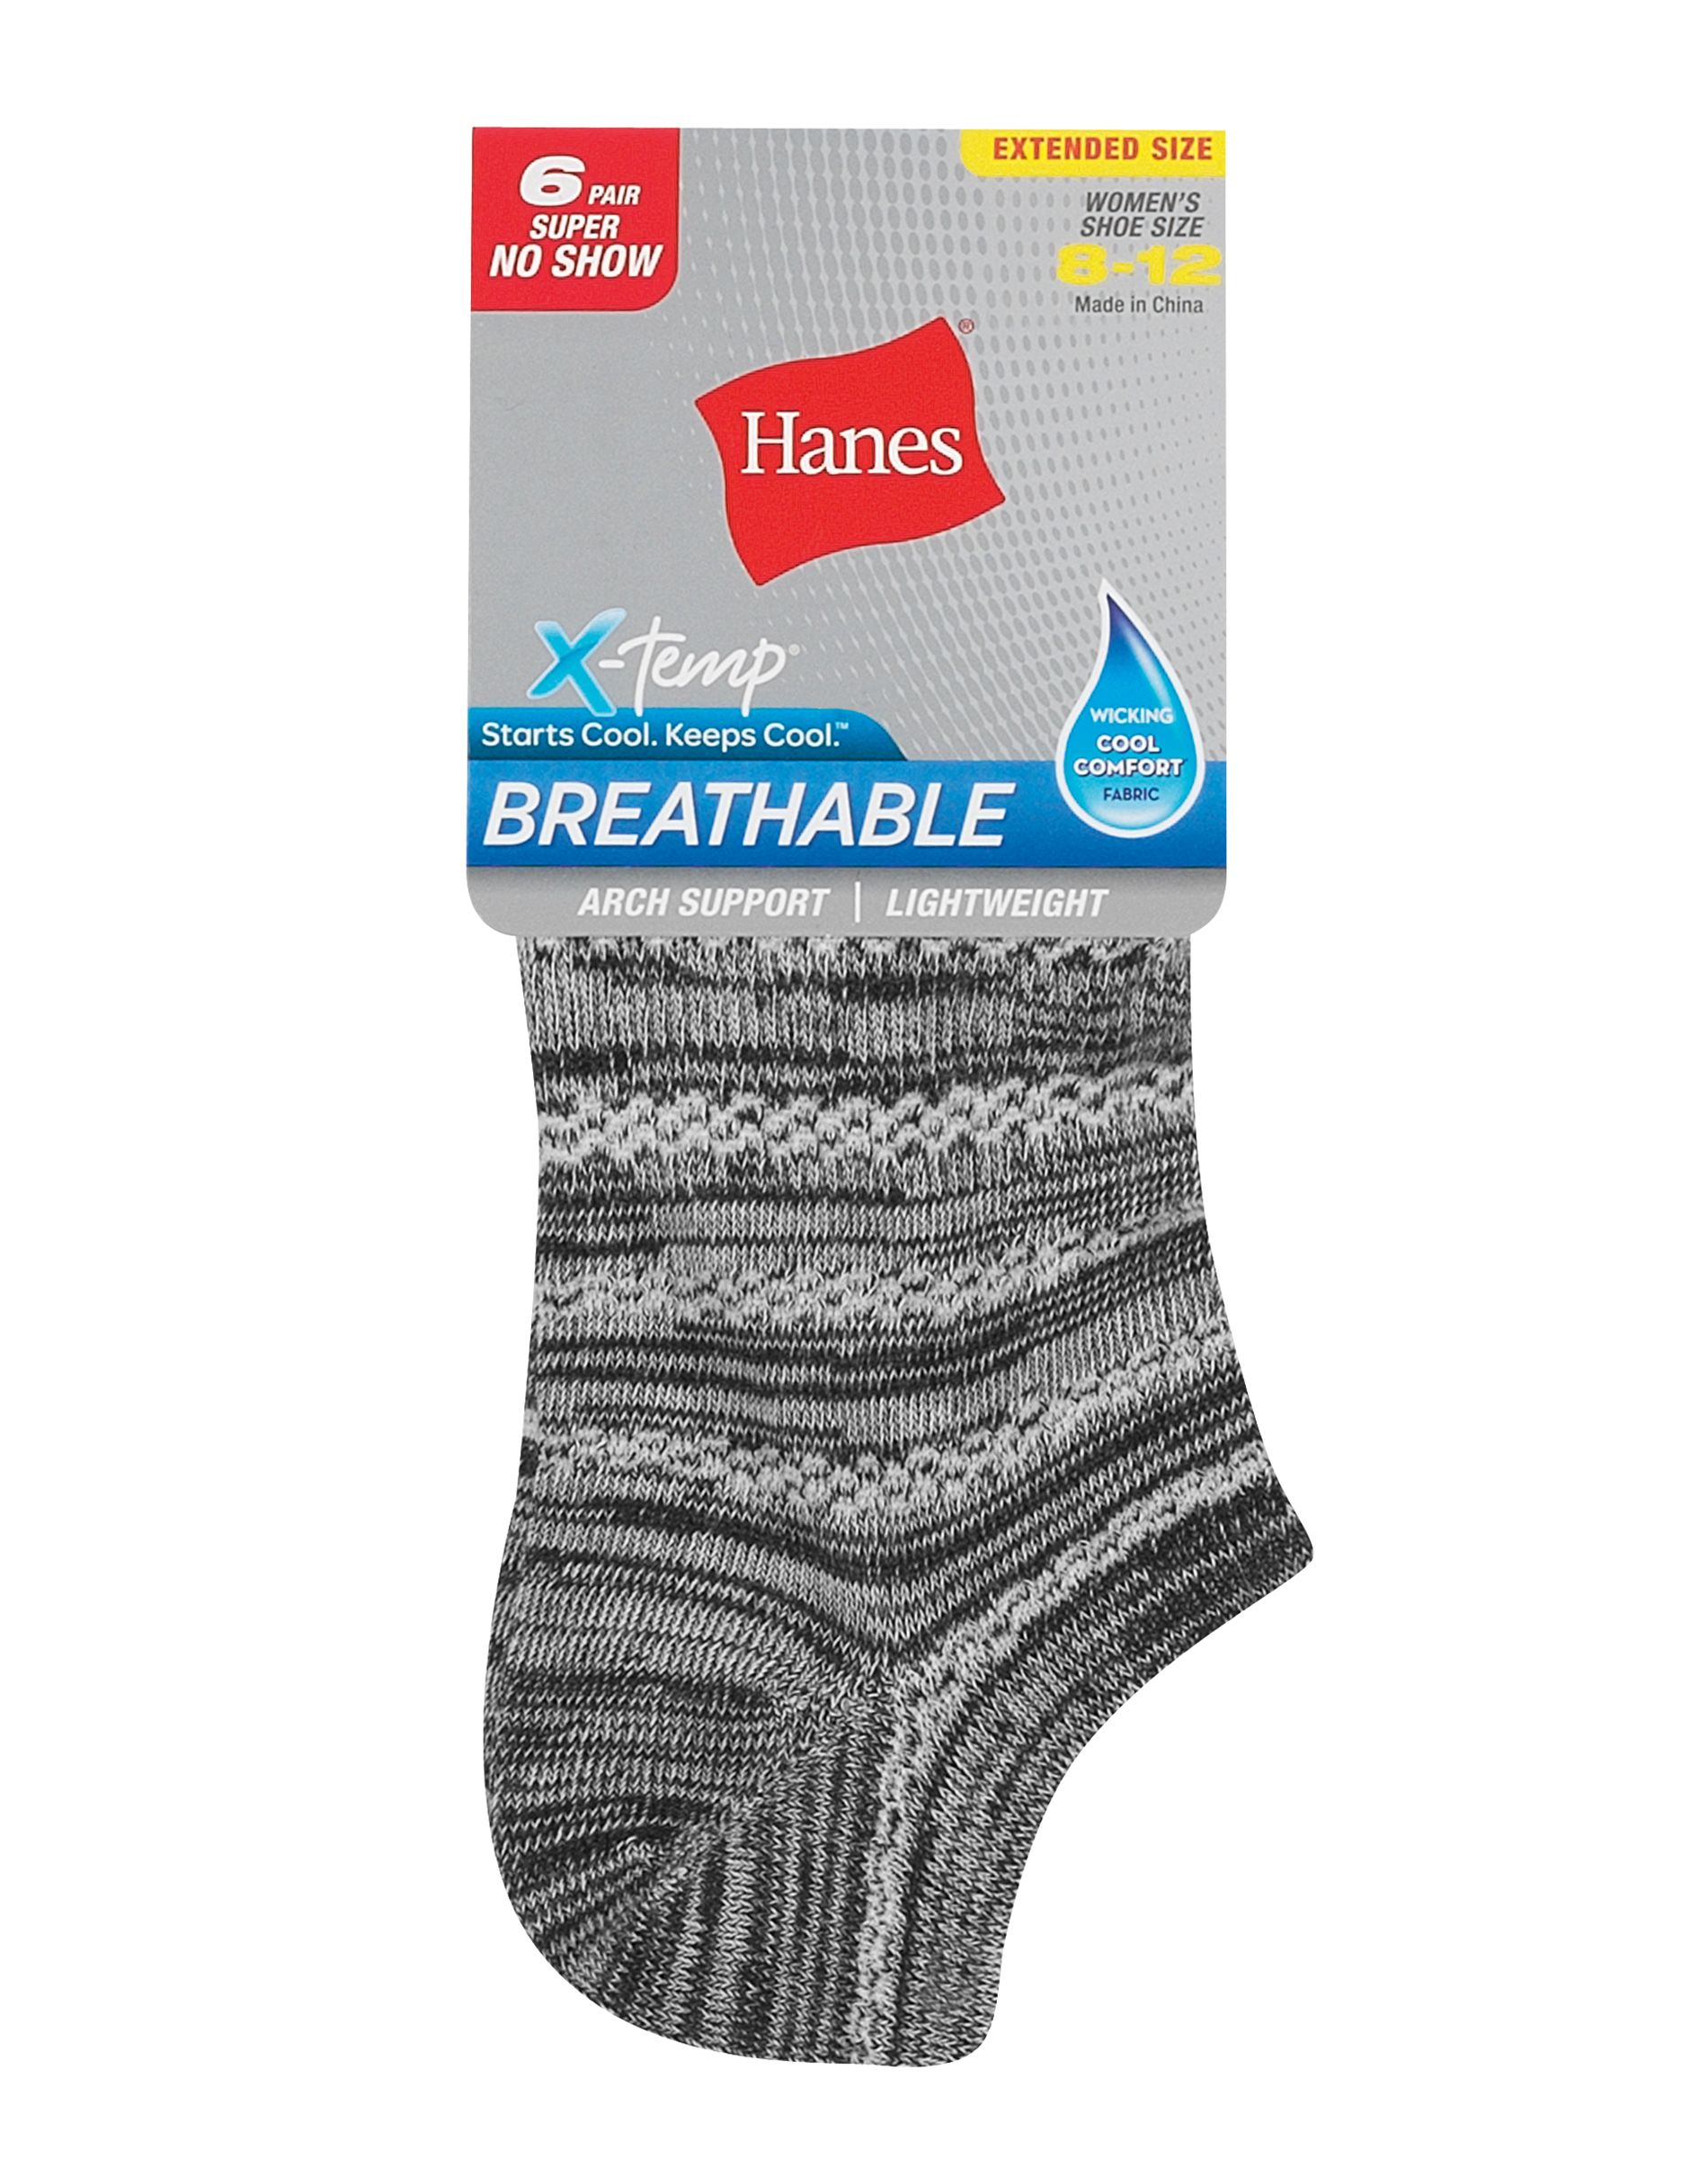 hanes women's breathable lightweight super no show socks extended sizes 8-12, 6-pack women Hanes